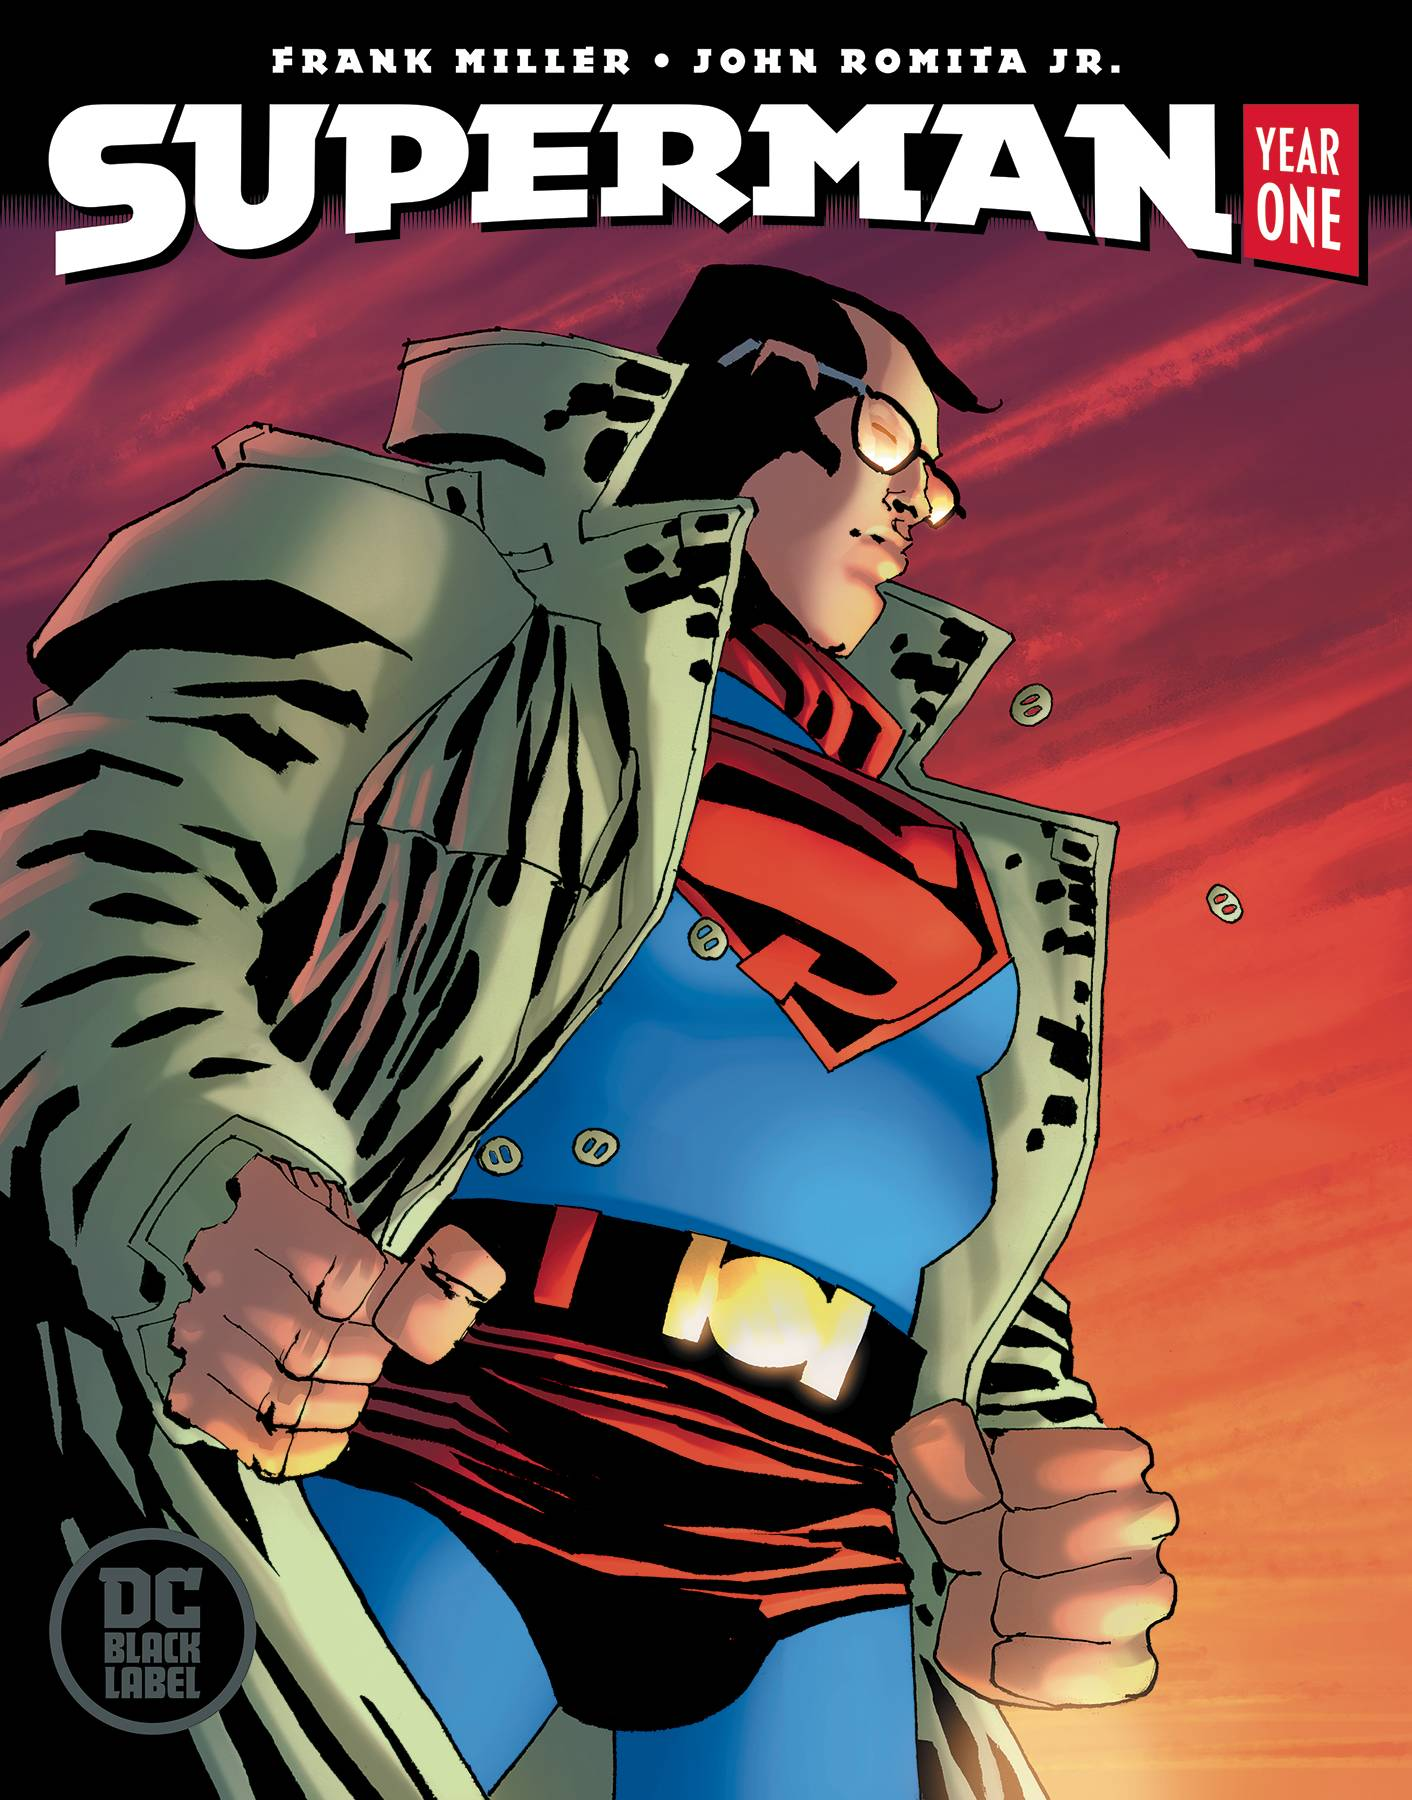 SUPERMAN YEAR ONE #2 (OF 3) MILLER COVER (MR)